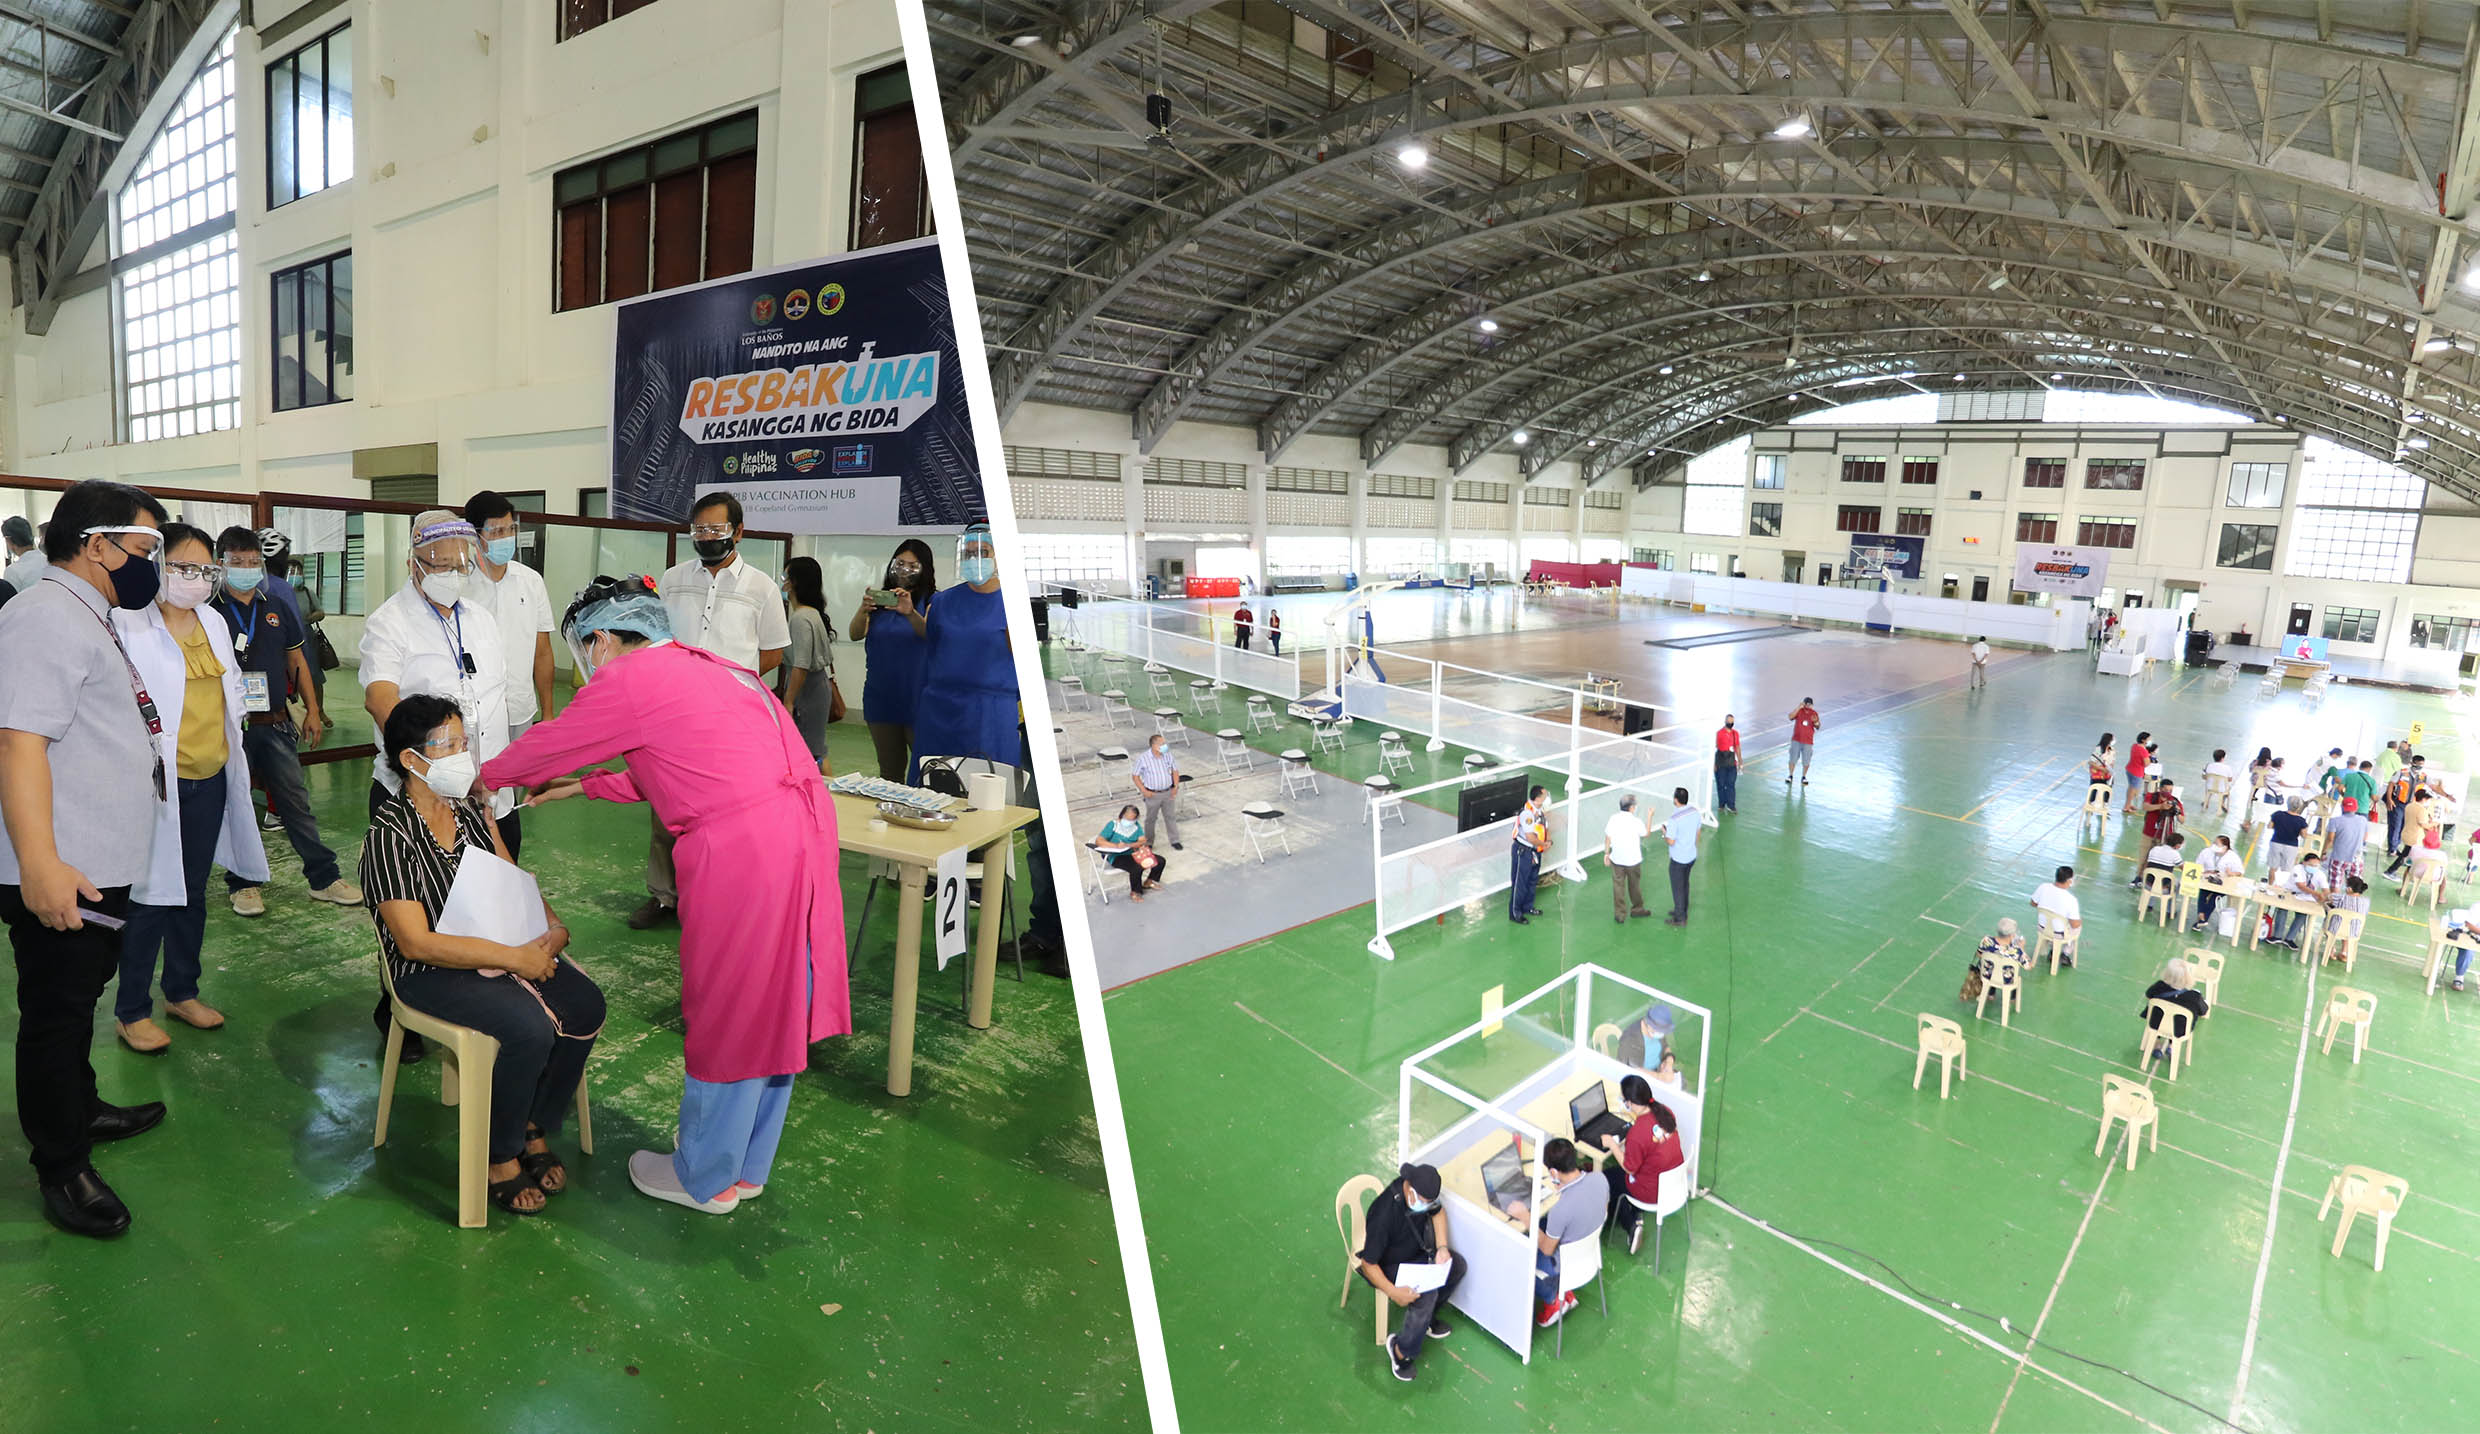 UPLB hosts LB COVID-19 vaccination venue